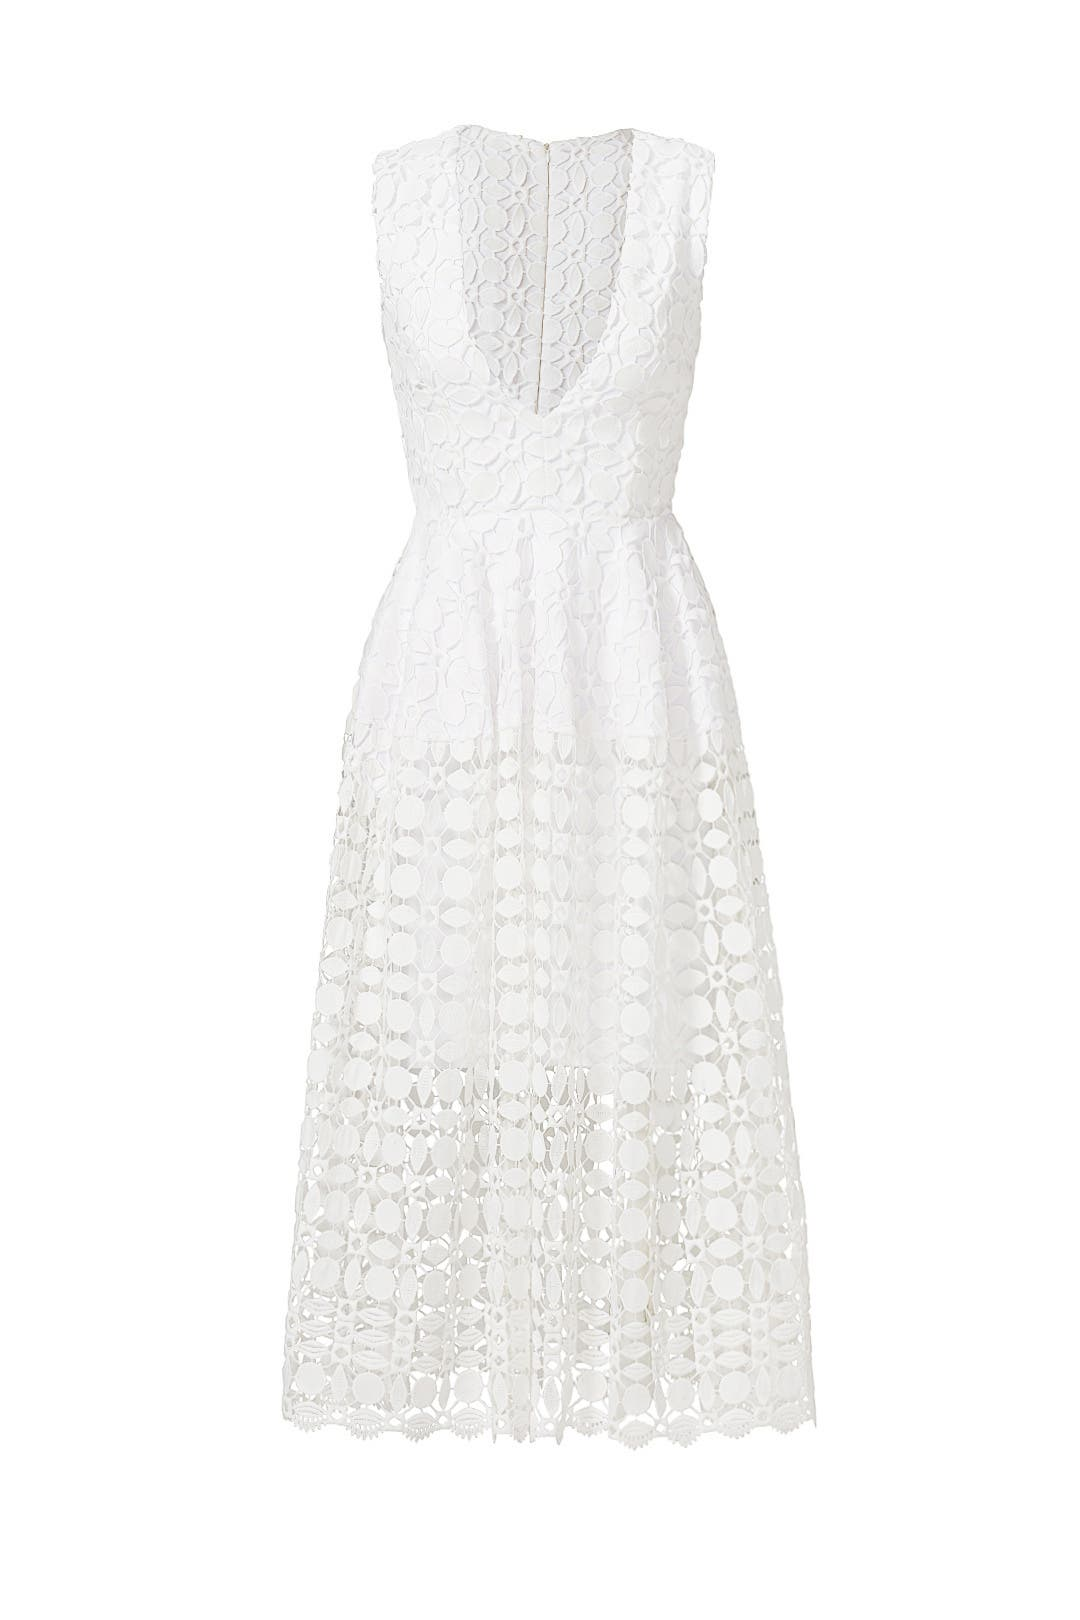 Nicholas Tiered Lace Dress